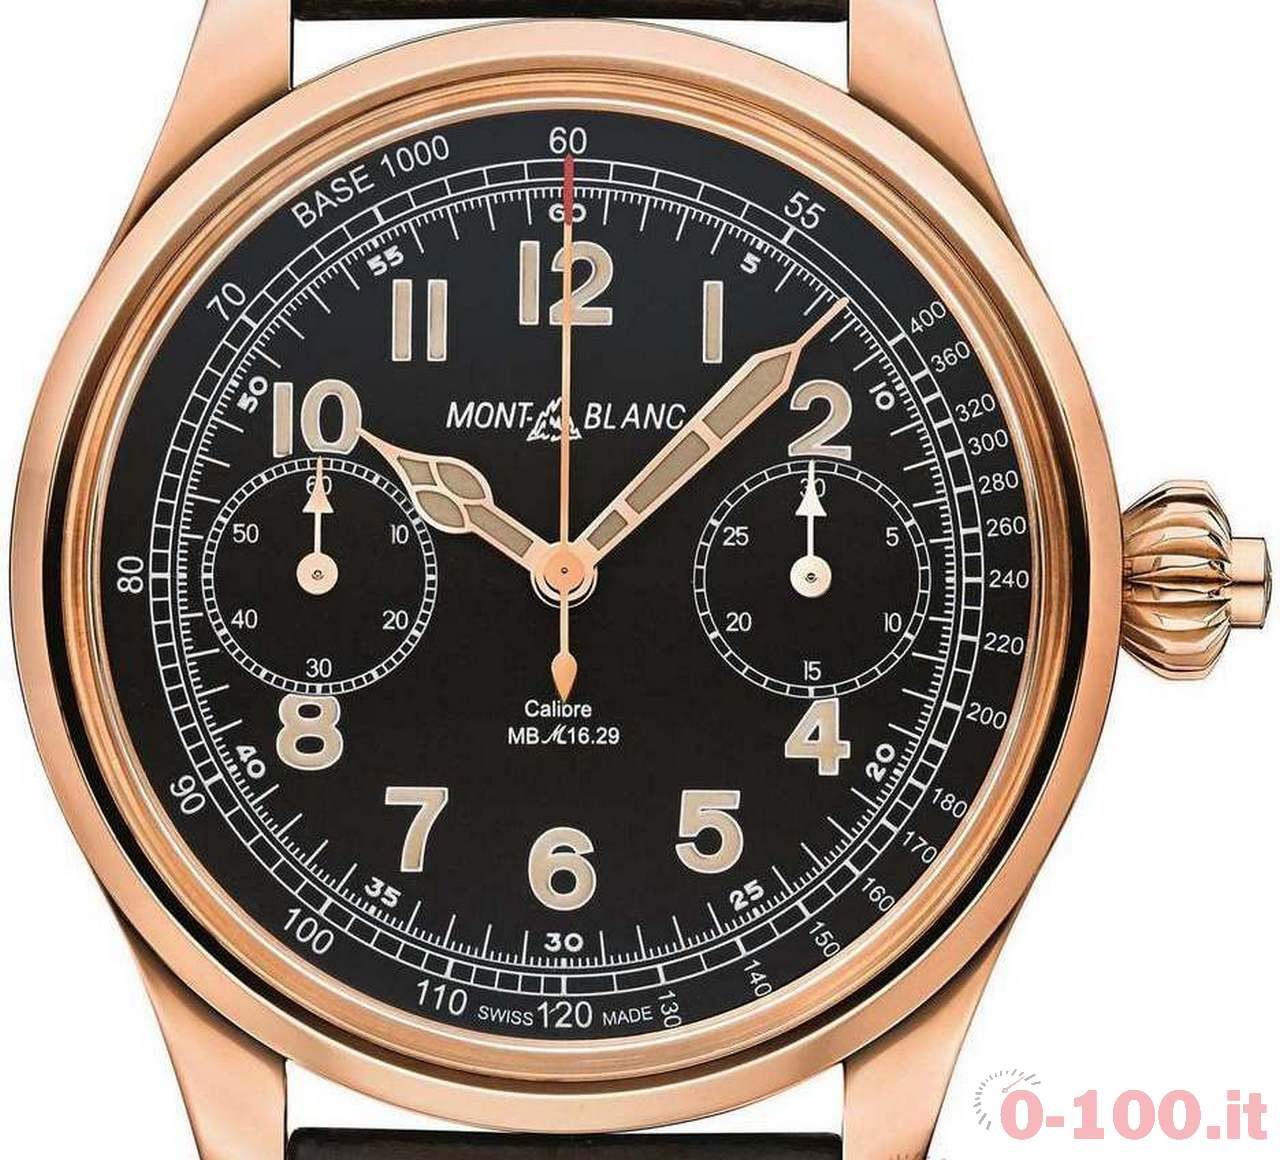 siar-2015-montblanc-1858-chronograph-tachymeter-limited-edition-ref-112637-prezzo-price_0-1002